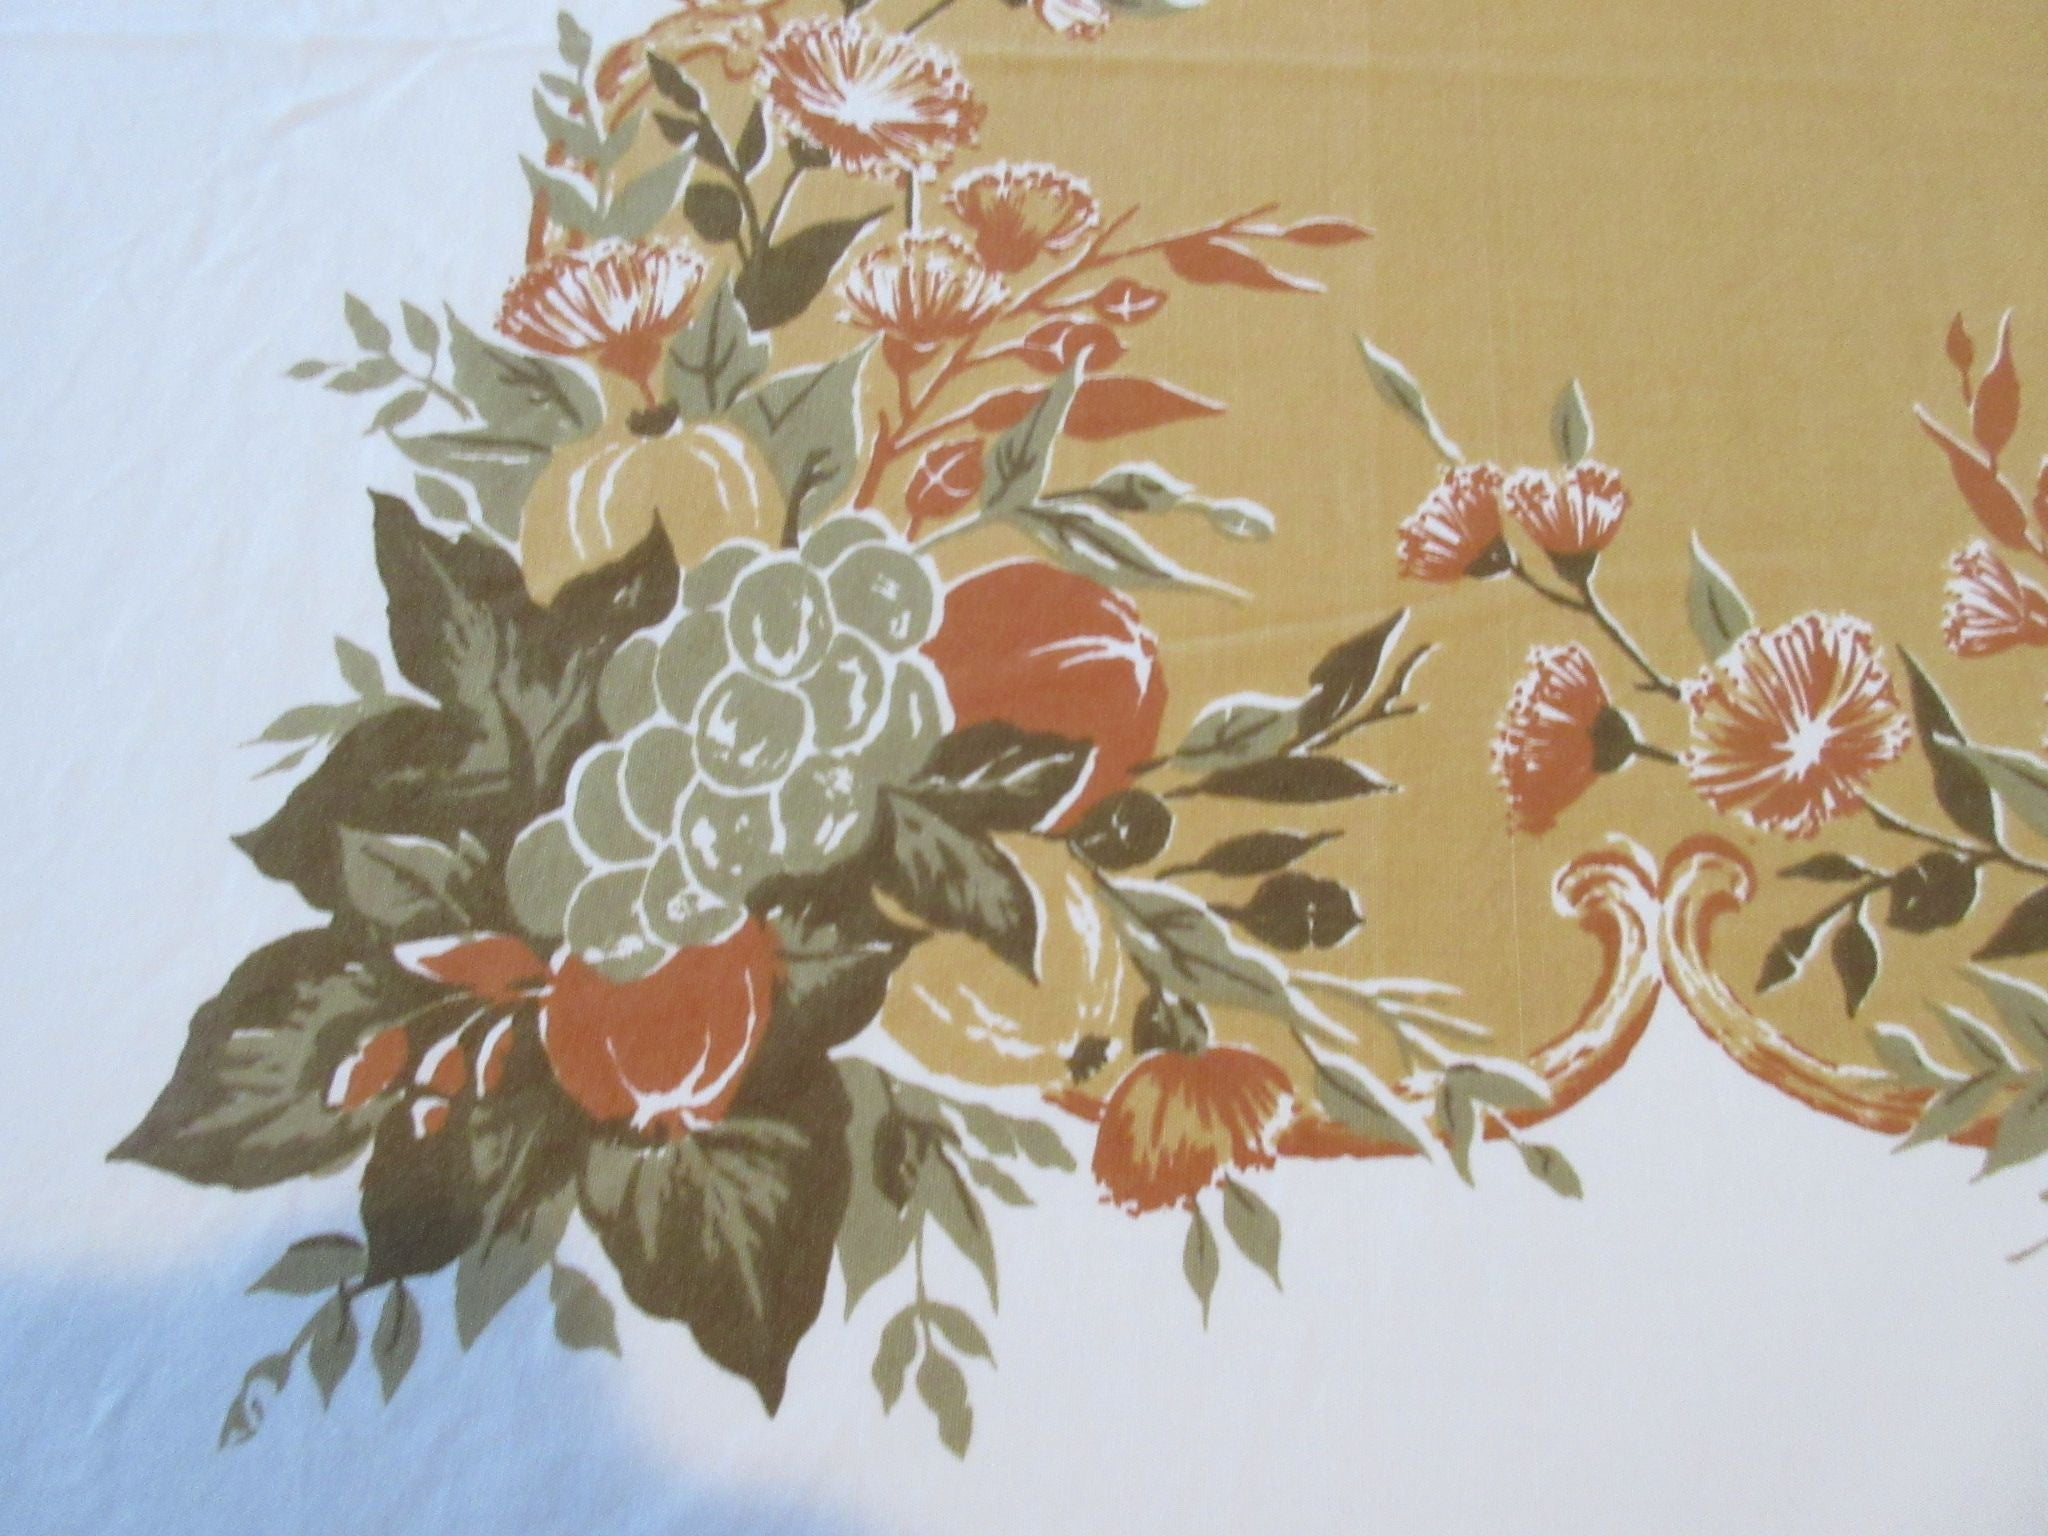 Large Harvest Vegetables Flowers Novelty Vintage Printed Tablecloth (91 X 60)